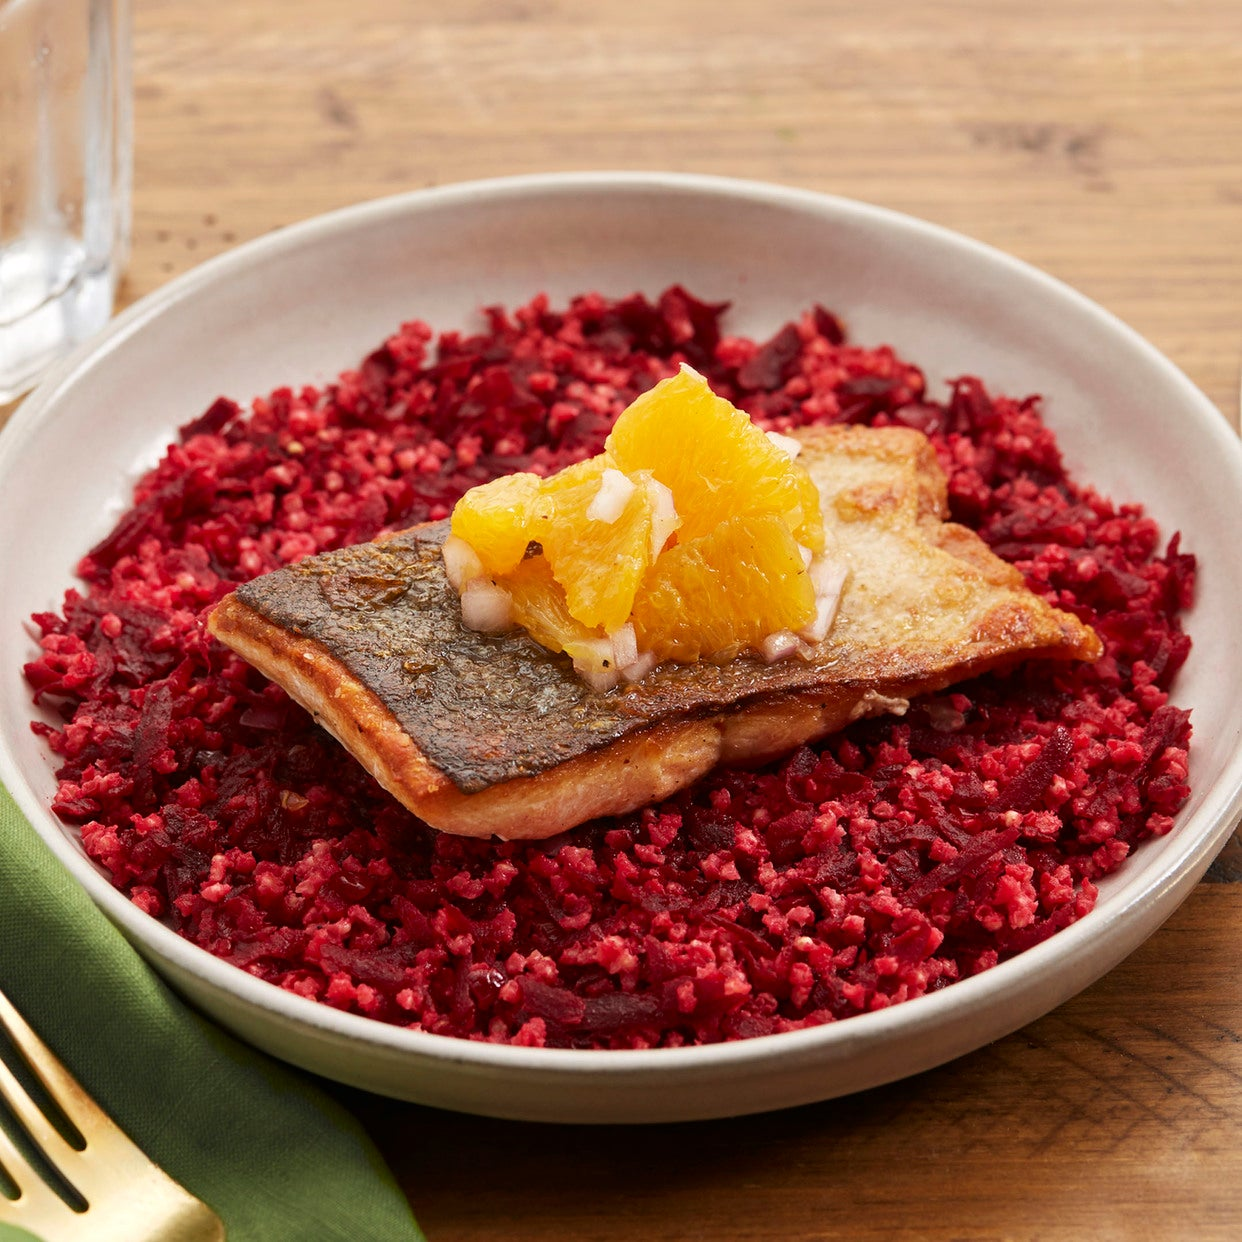 Seared Salmon with Spicy Beet & Millet Salad